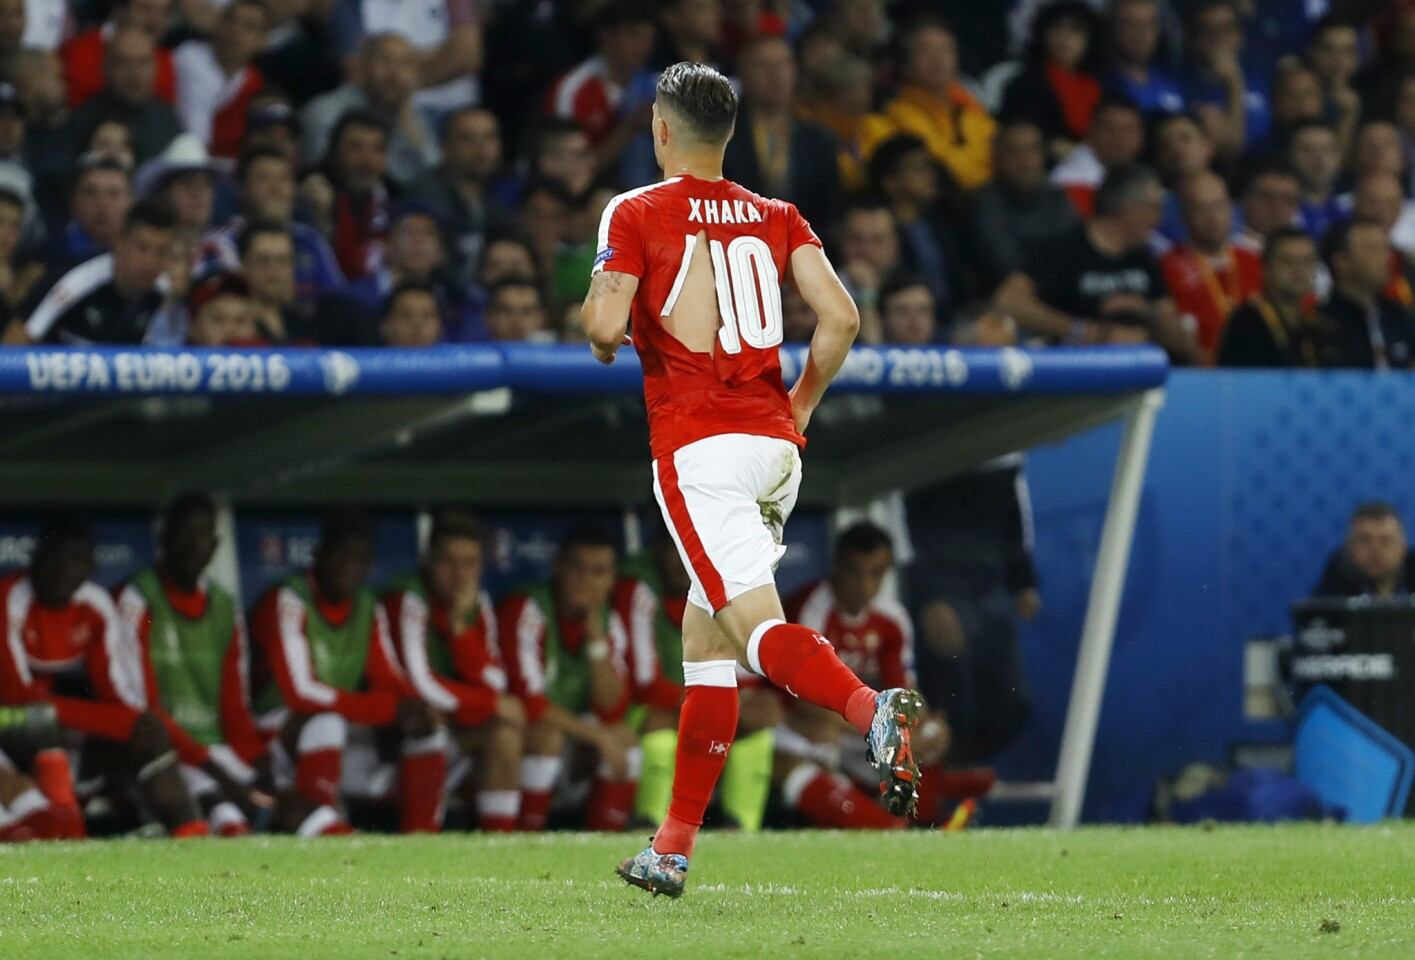 Switzerland's Granit Xhaka runs to the bench and change his ripped jersey during the Euro 2016 Group A soccer match between Switzerland and France at the Pierre Mauroy stadium in Villeneuve d'Ascq, near Lille, France, Sunday, June 19, 2016. (AP Photo/Darko Vojinovic)